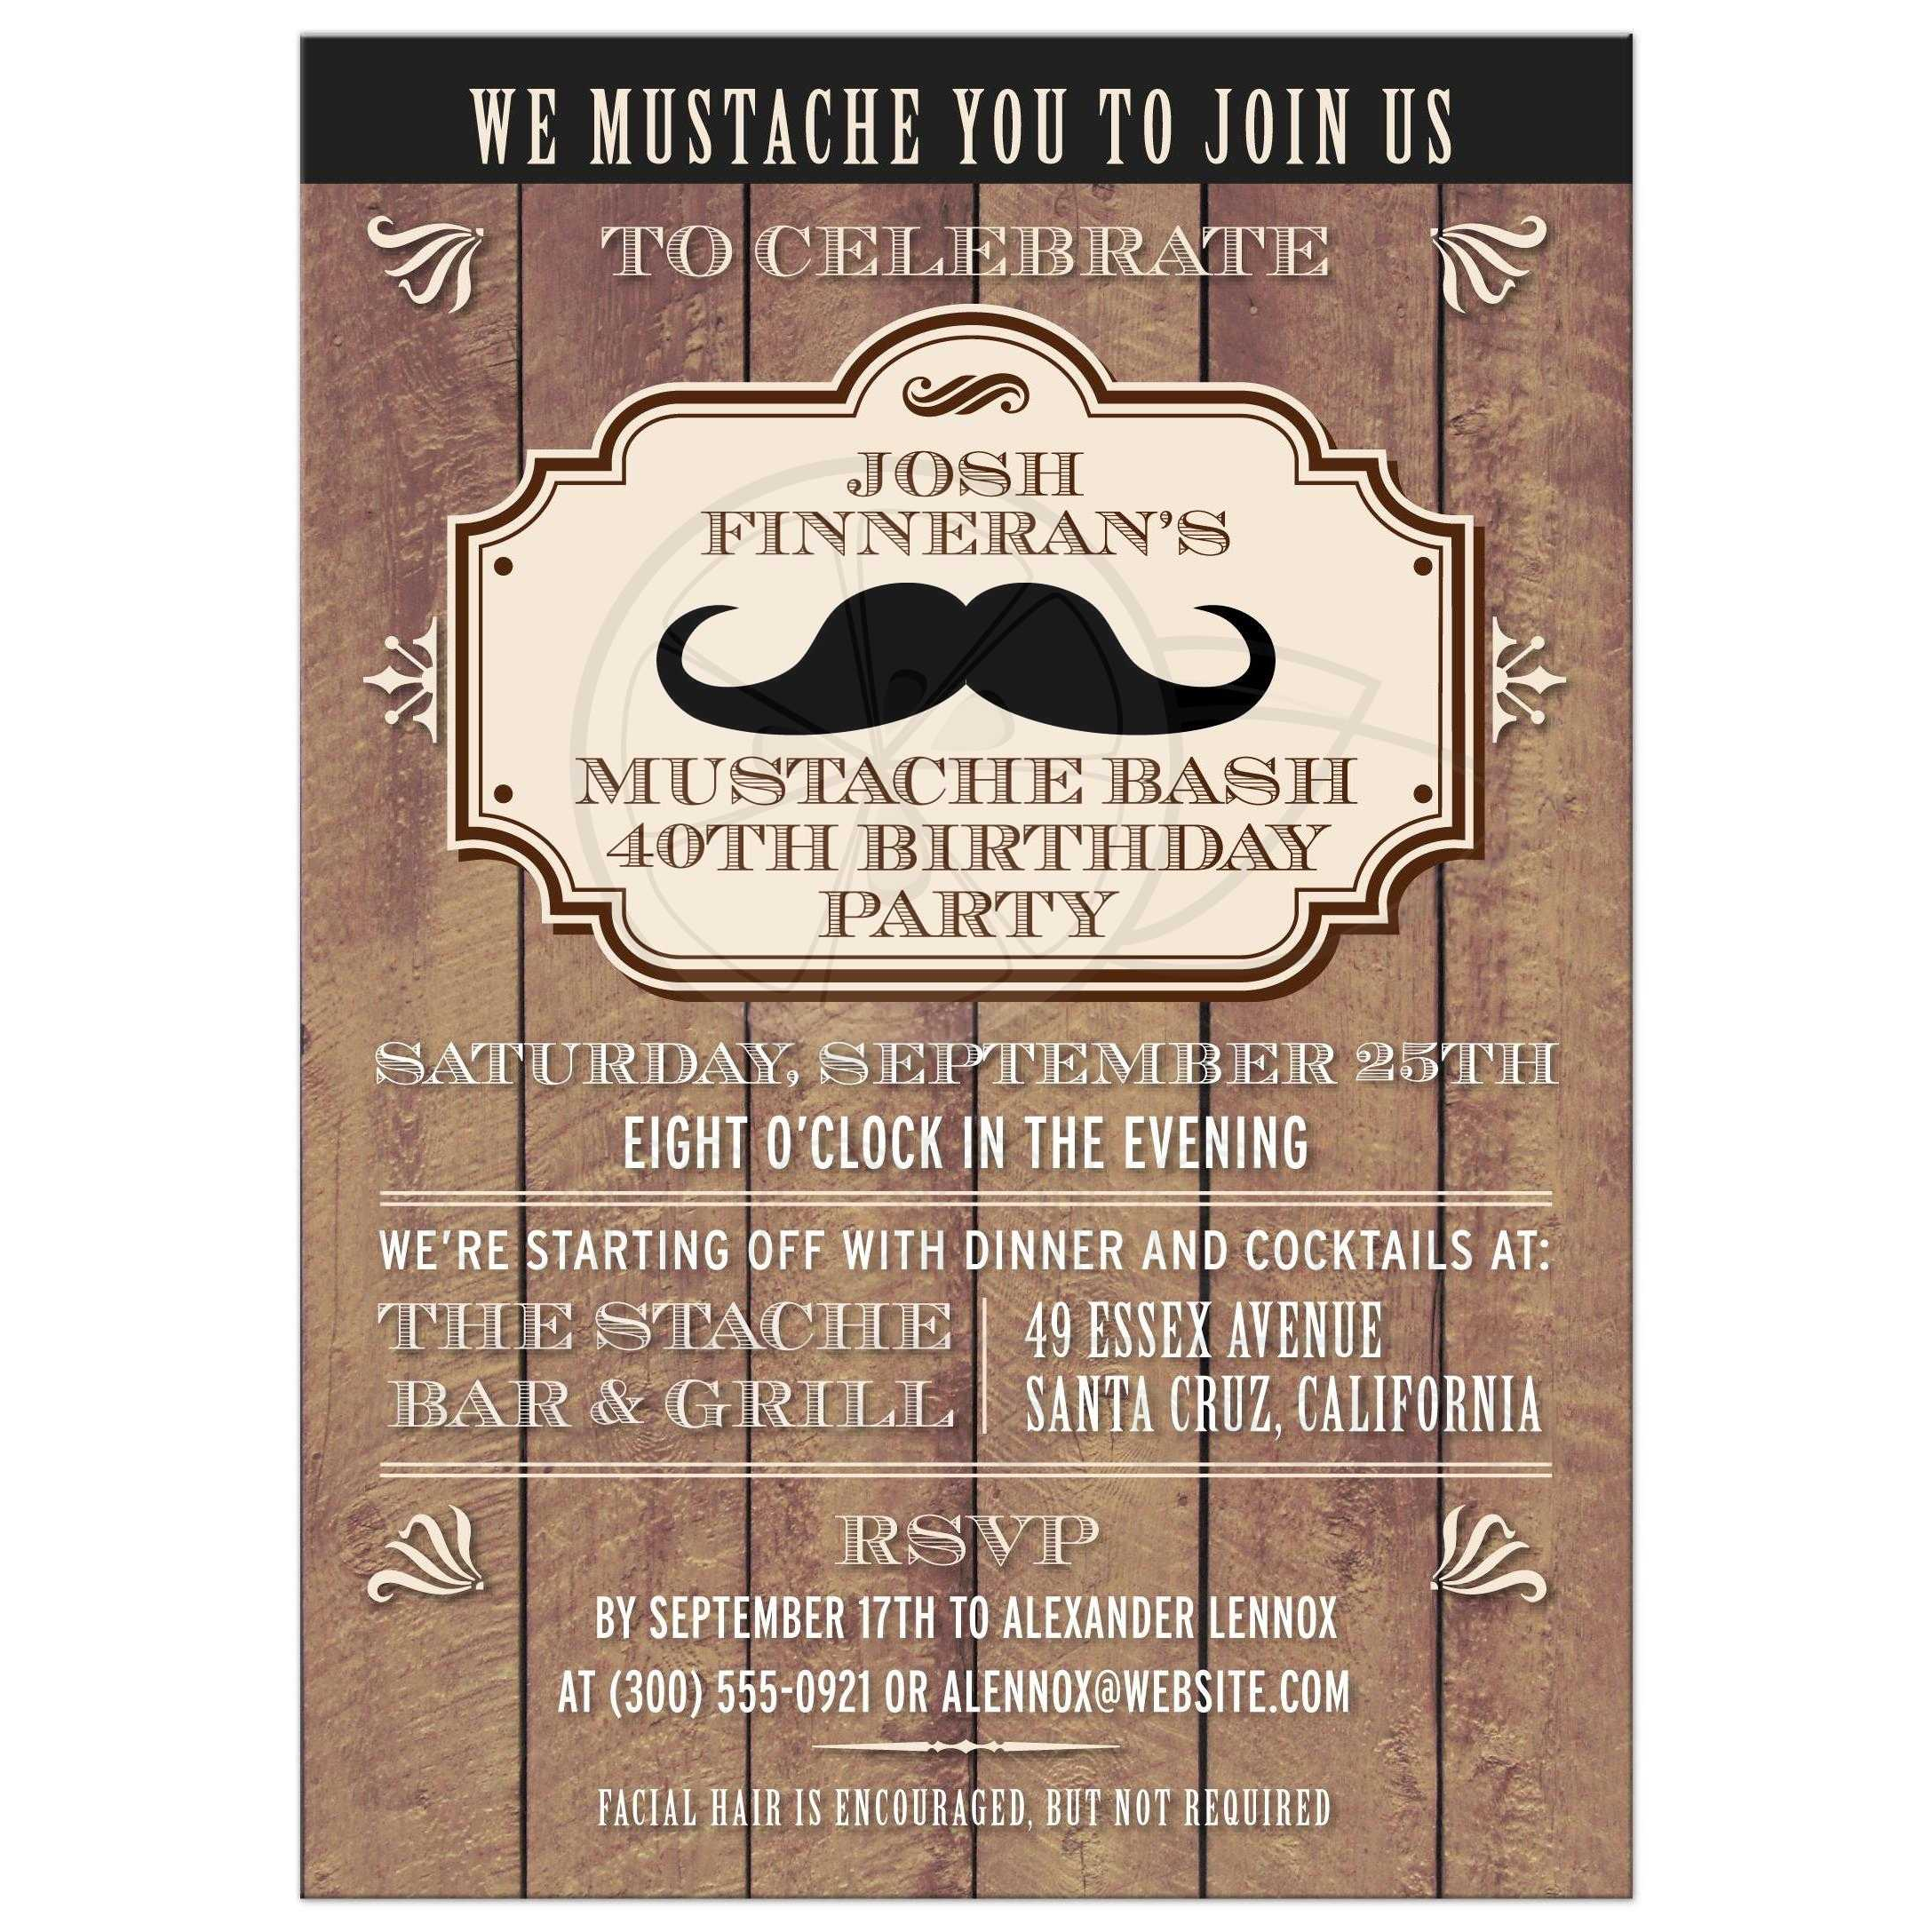 Invitation - Rustic Wood Mustache Bash